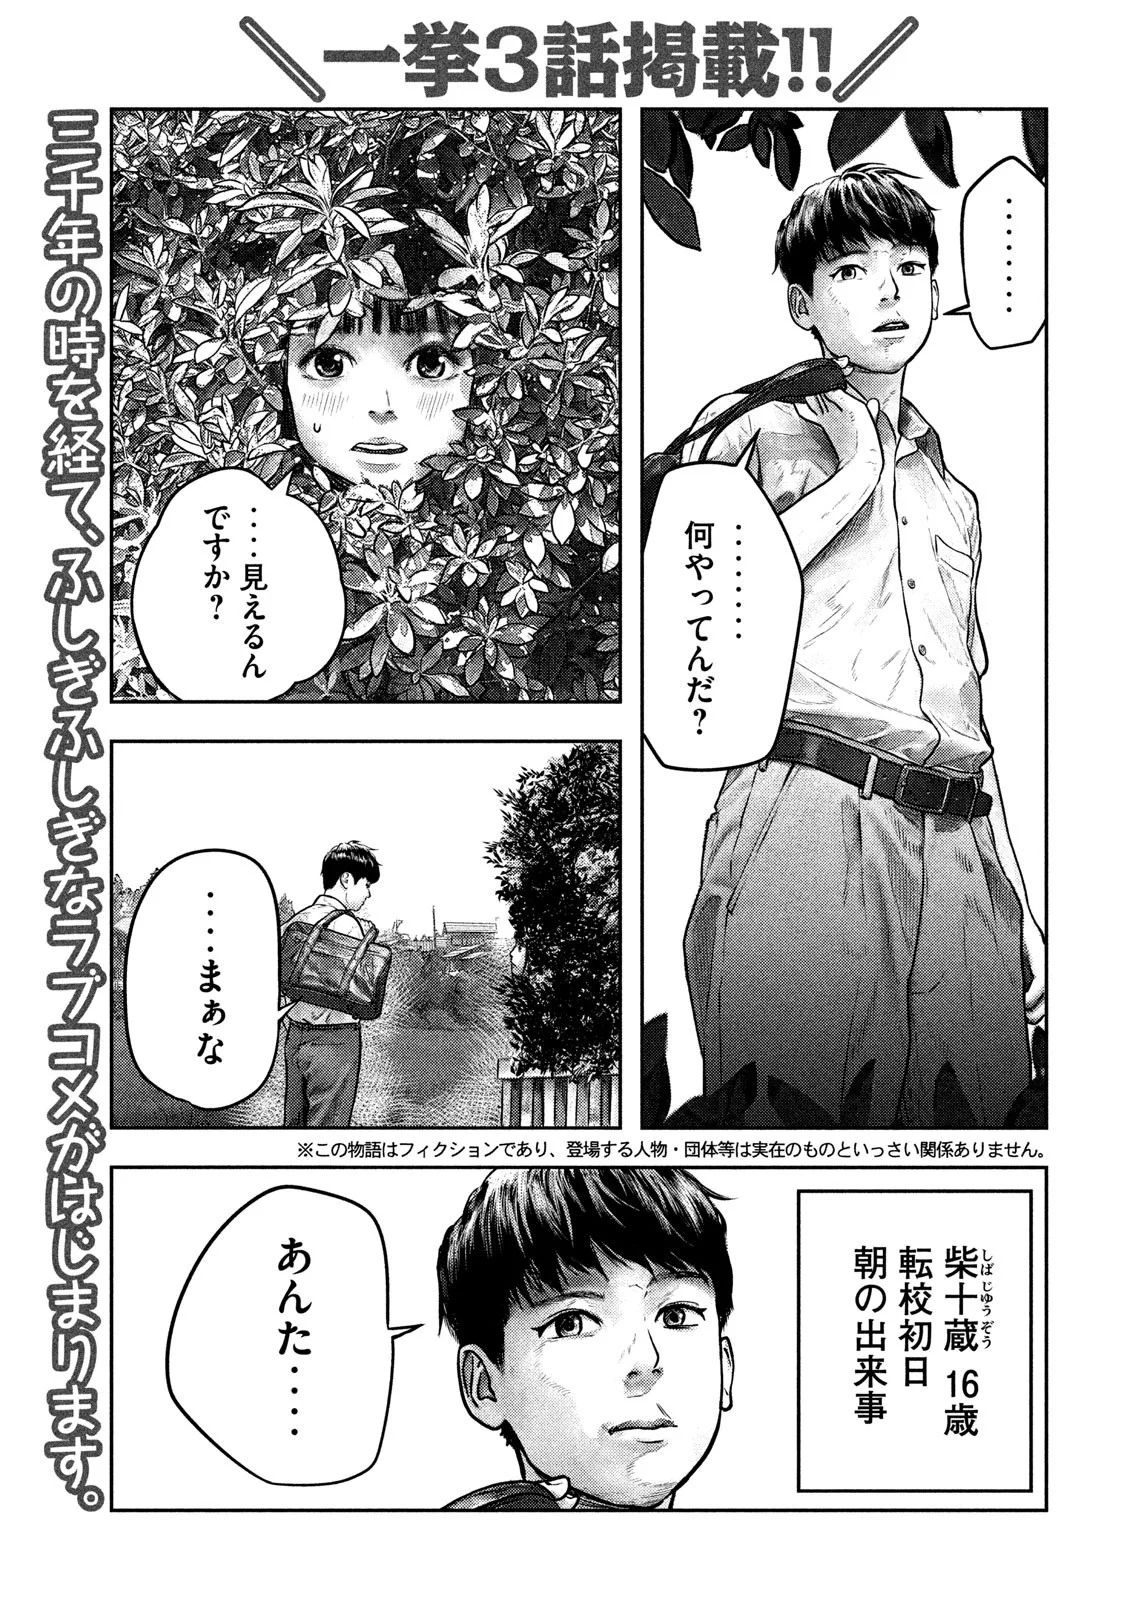 Manga Raw Sanzemne no Kamitaiou Chapter 01